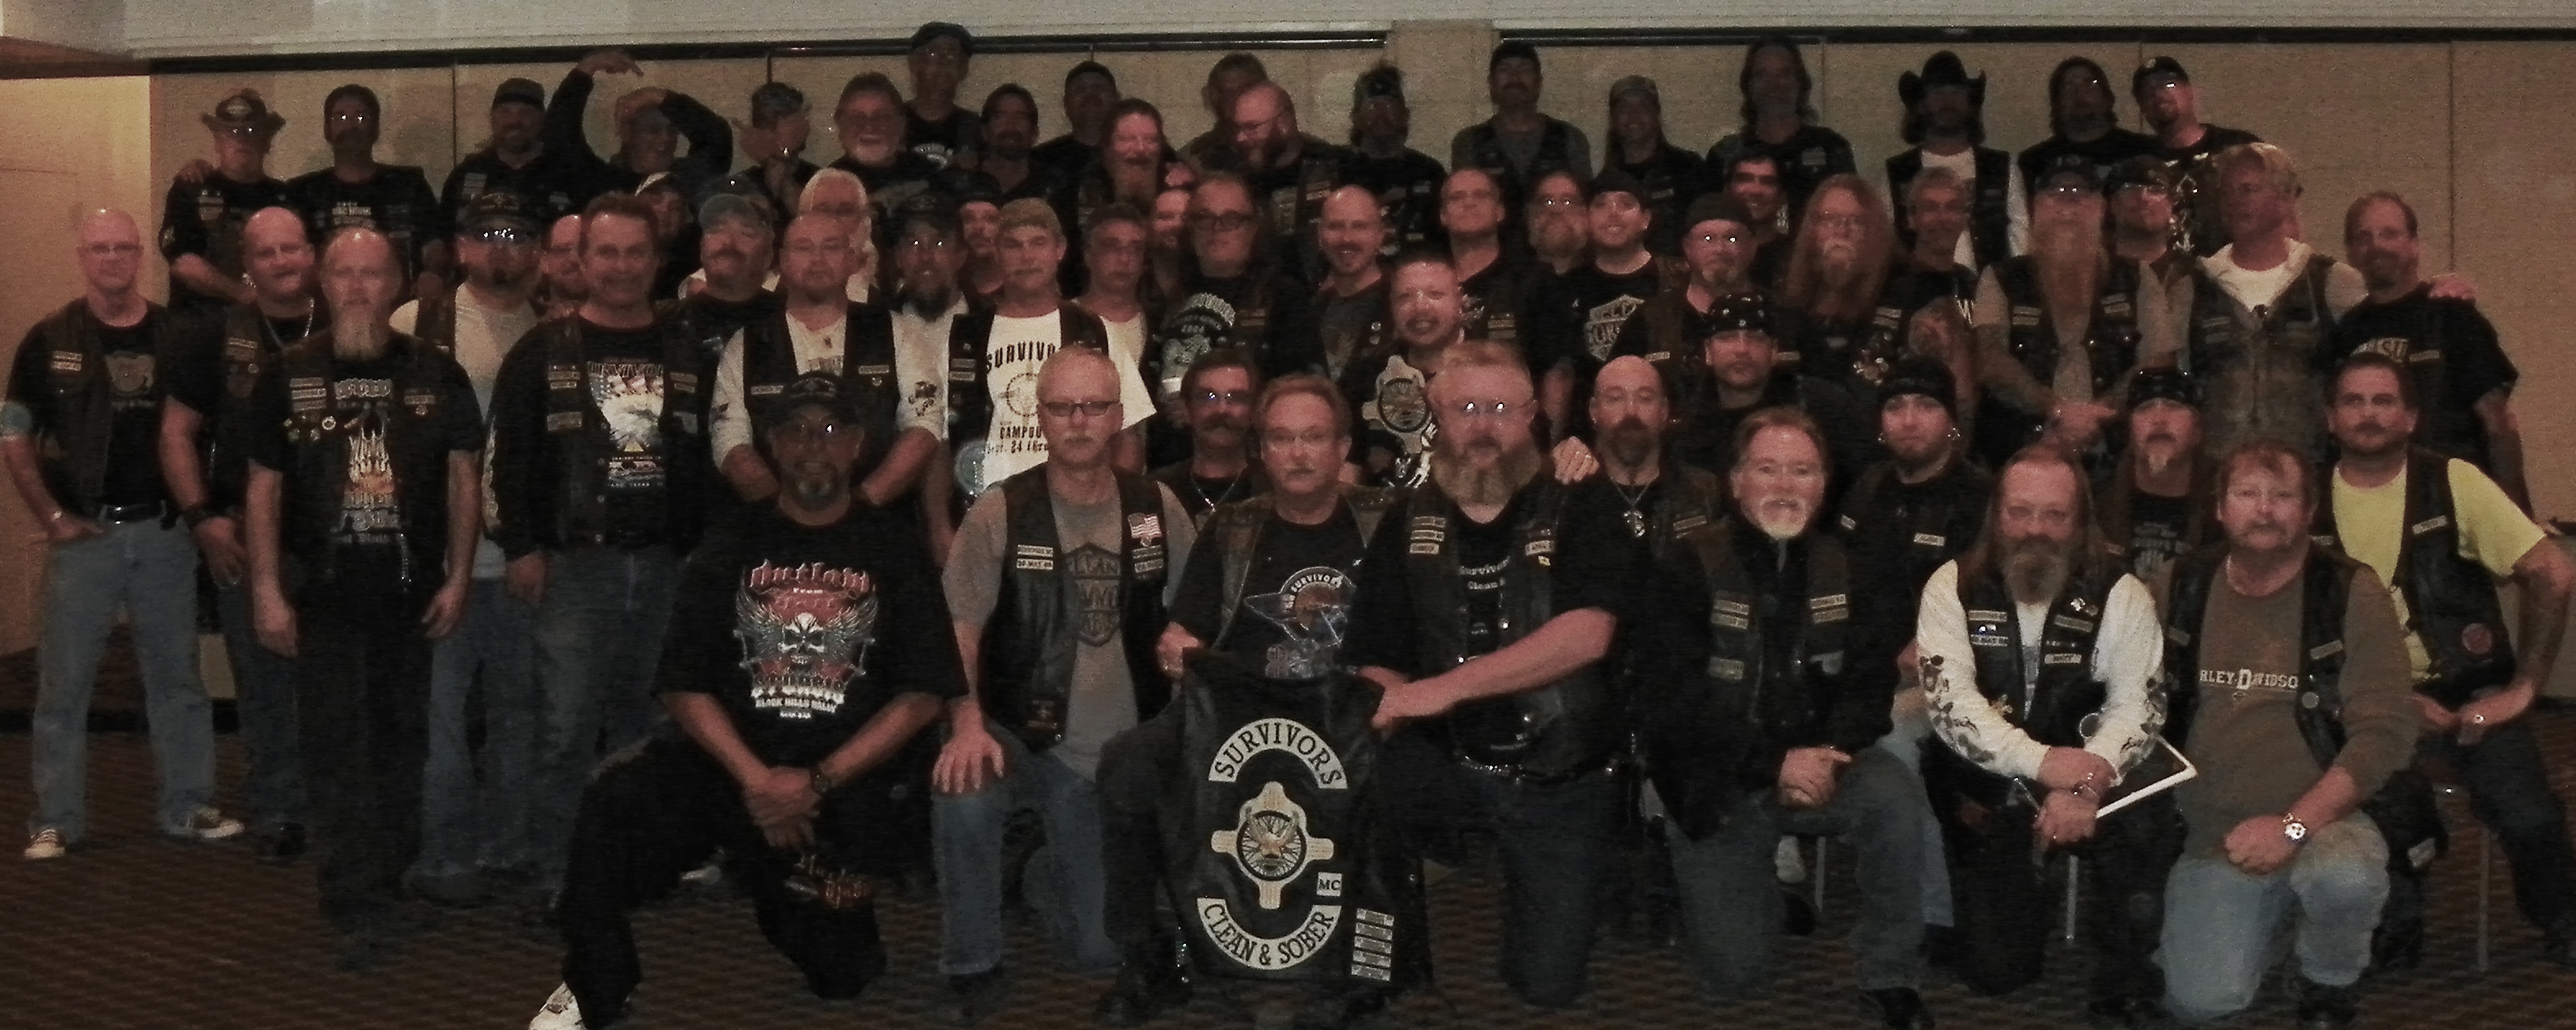 The Survivors is a brotherhood of Clean & Sober bikers